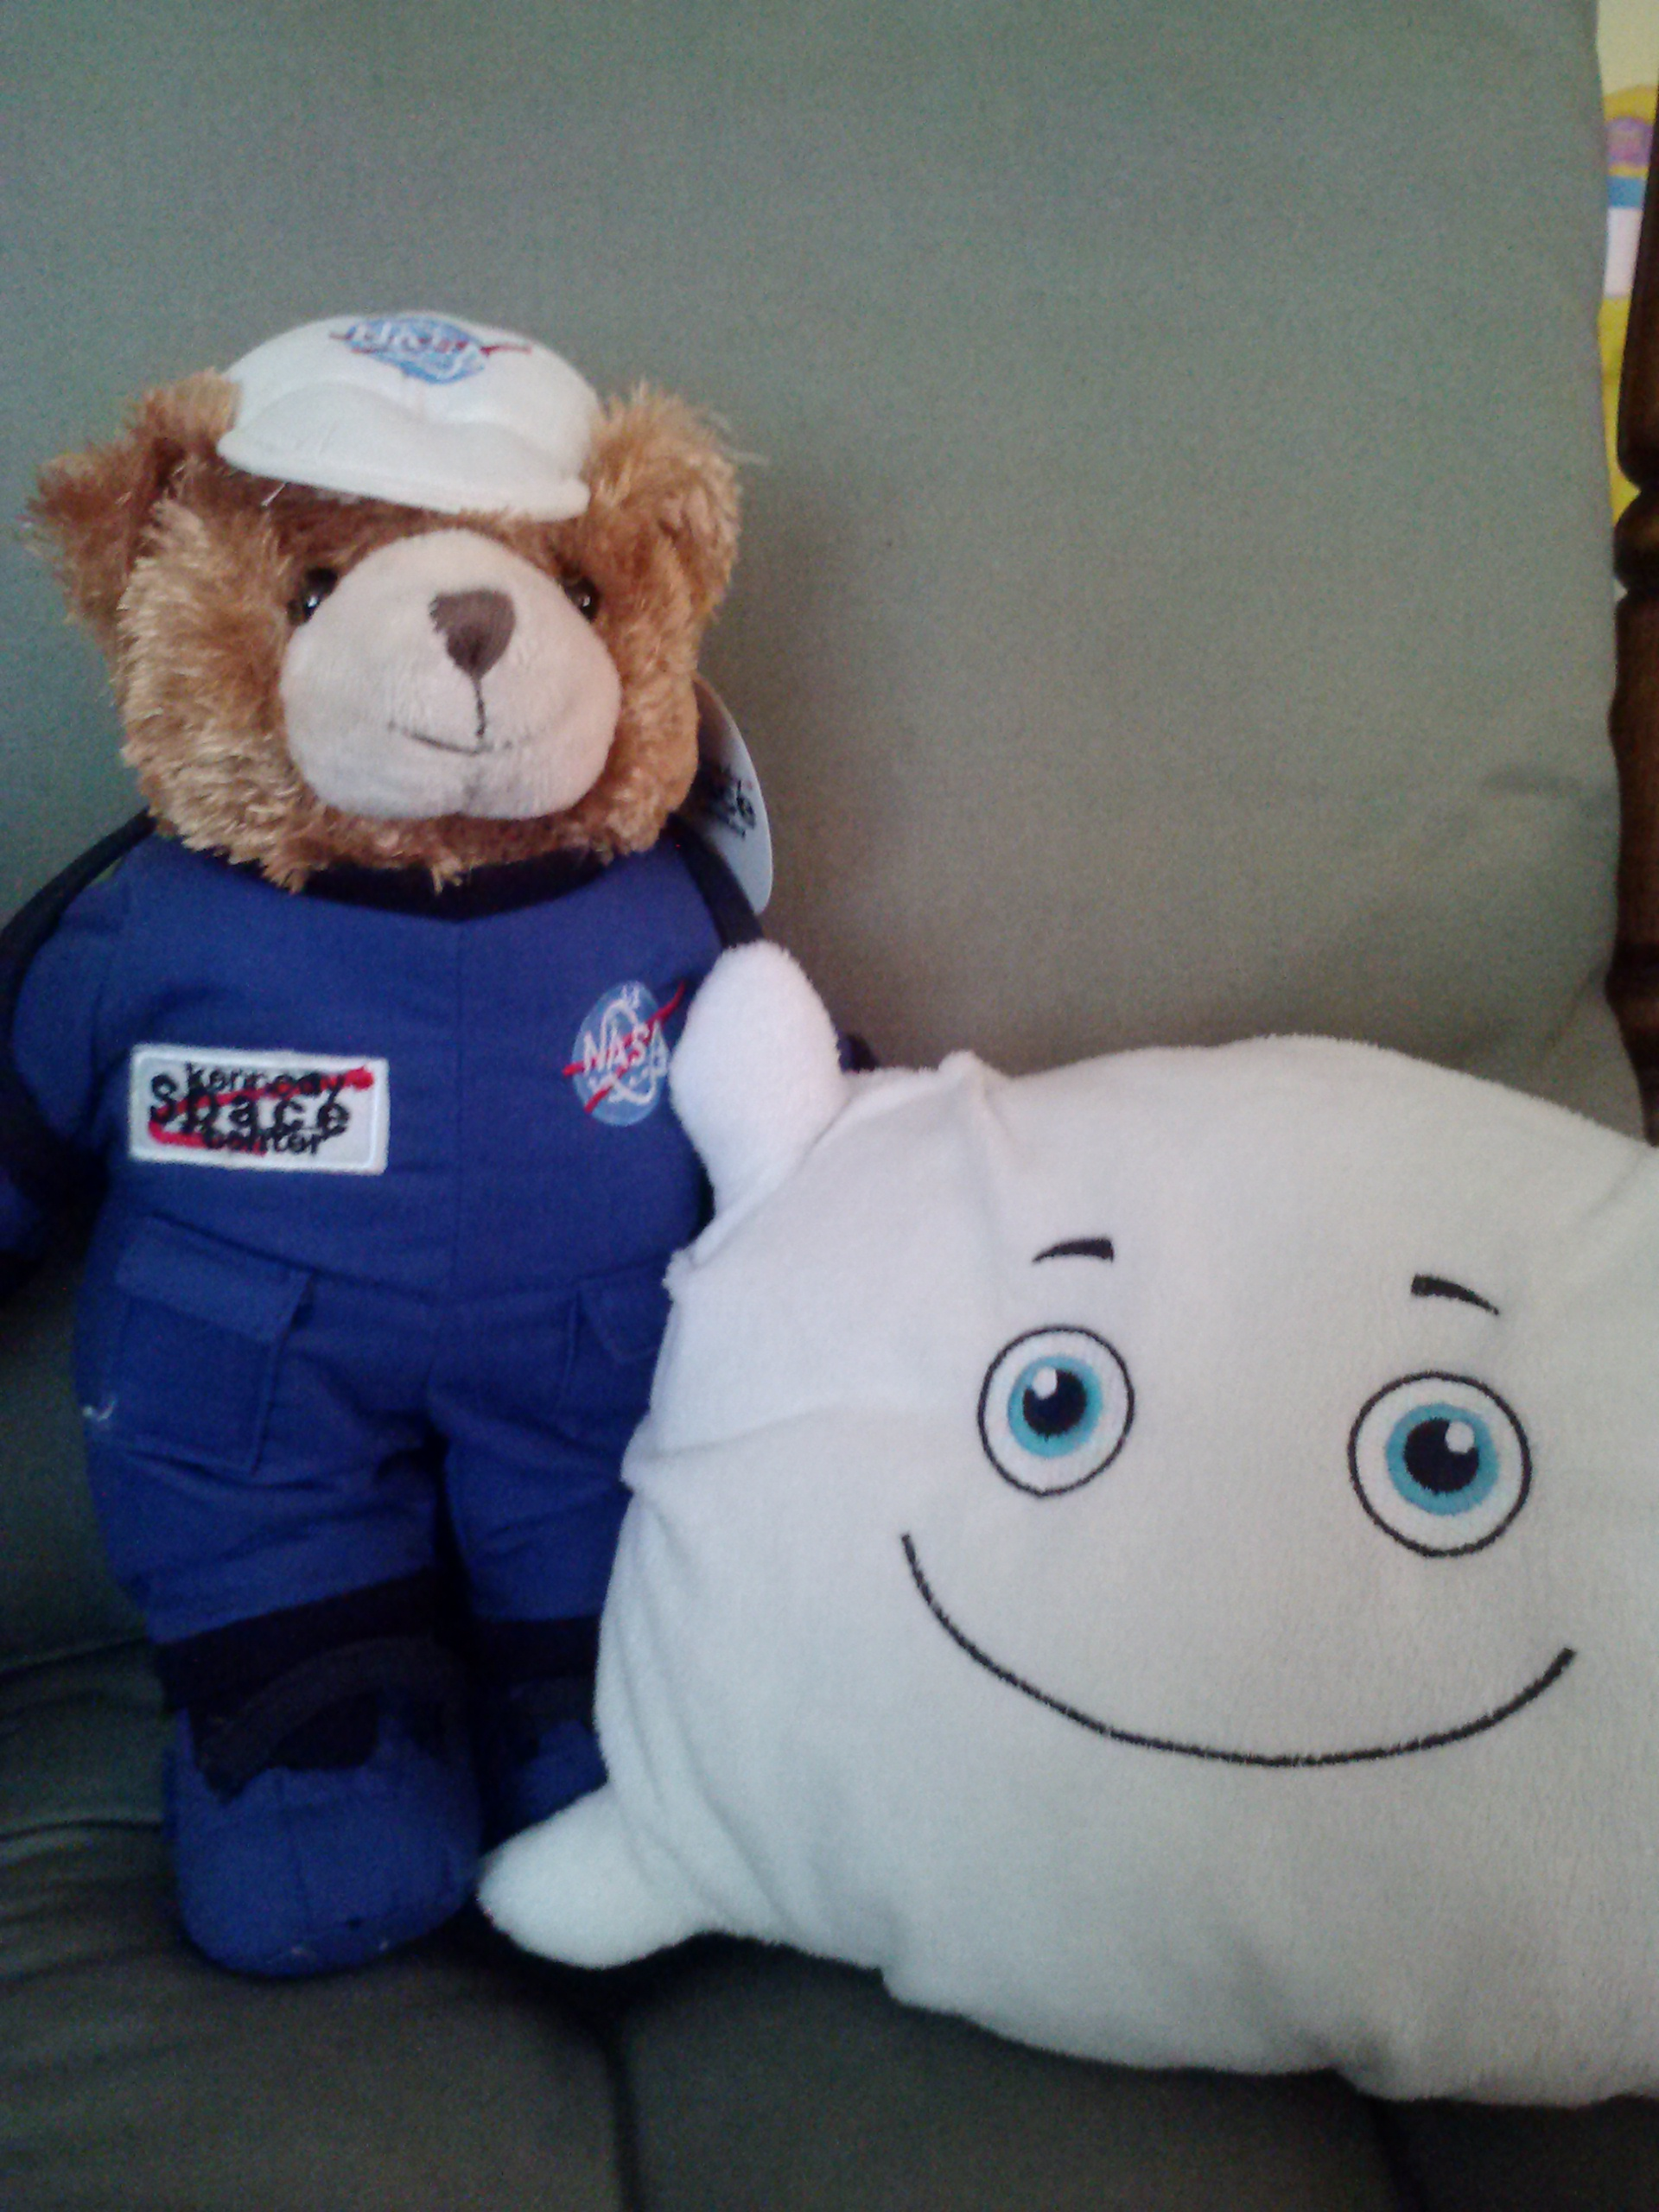 McStuffy O'Fluffigan and his new friend, Space Bear